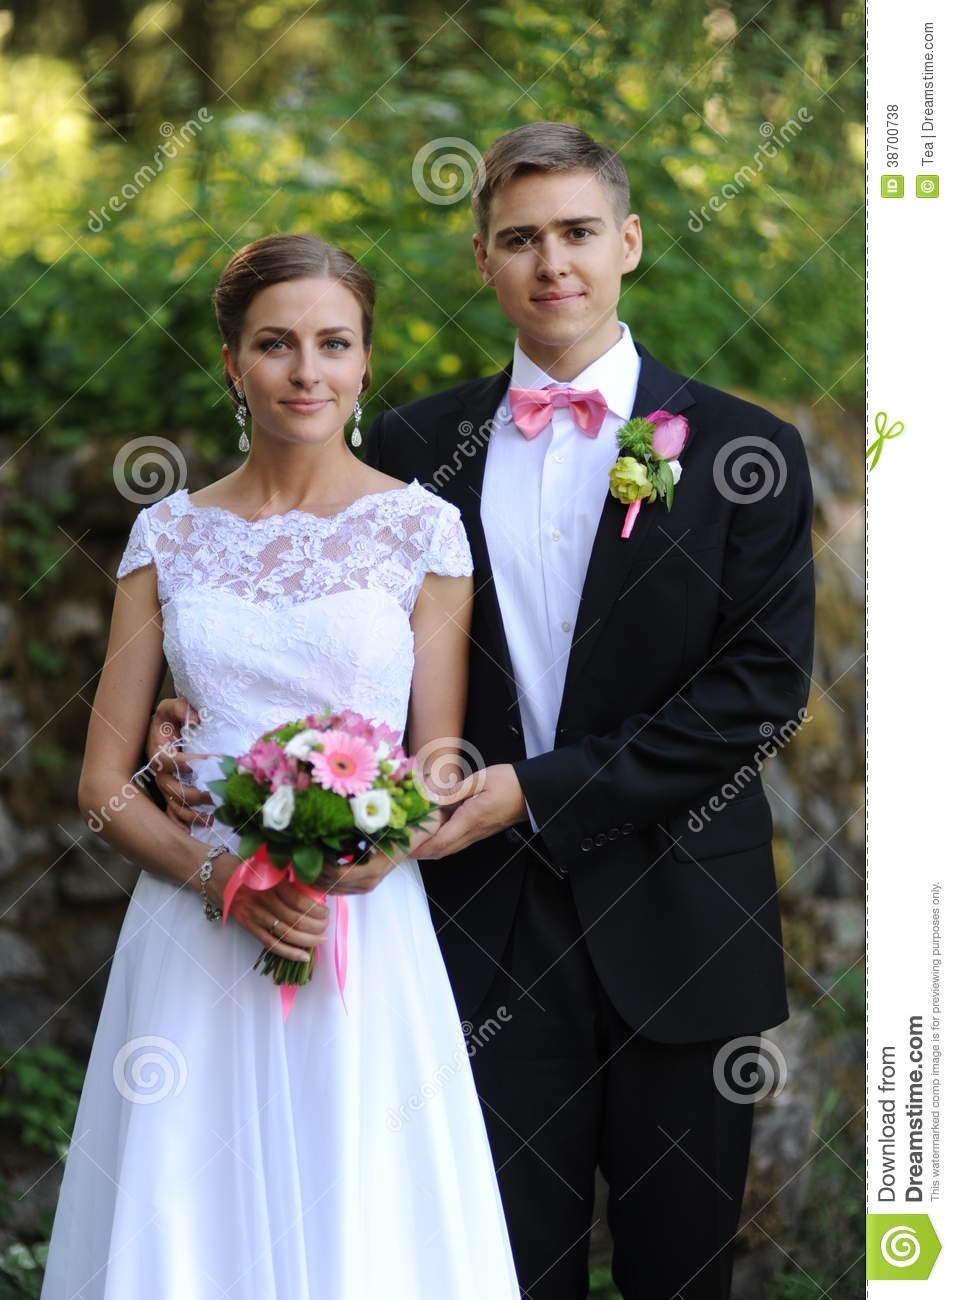 Bride and groom stand in park